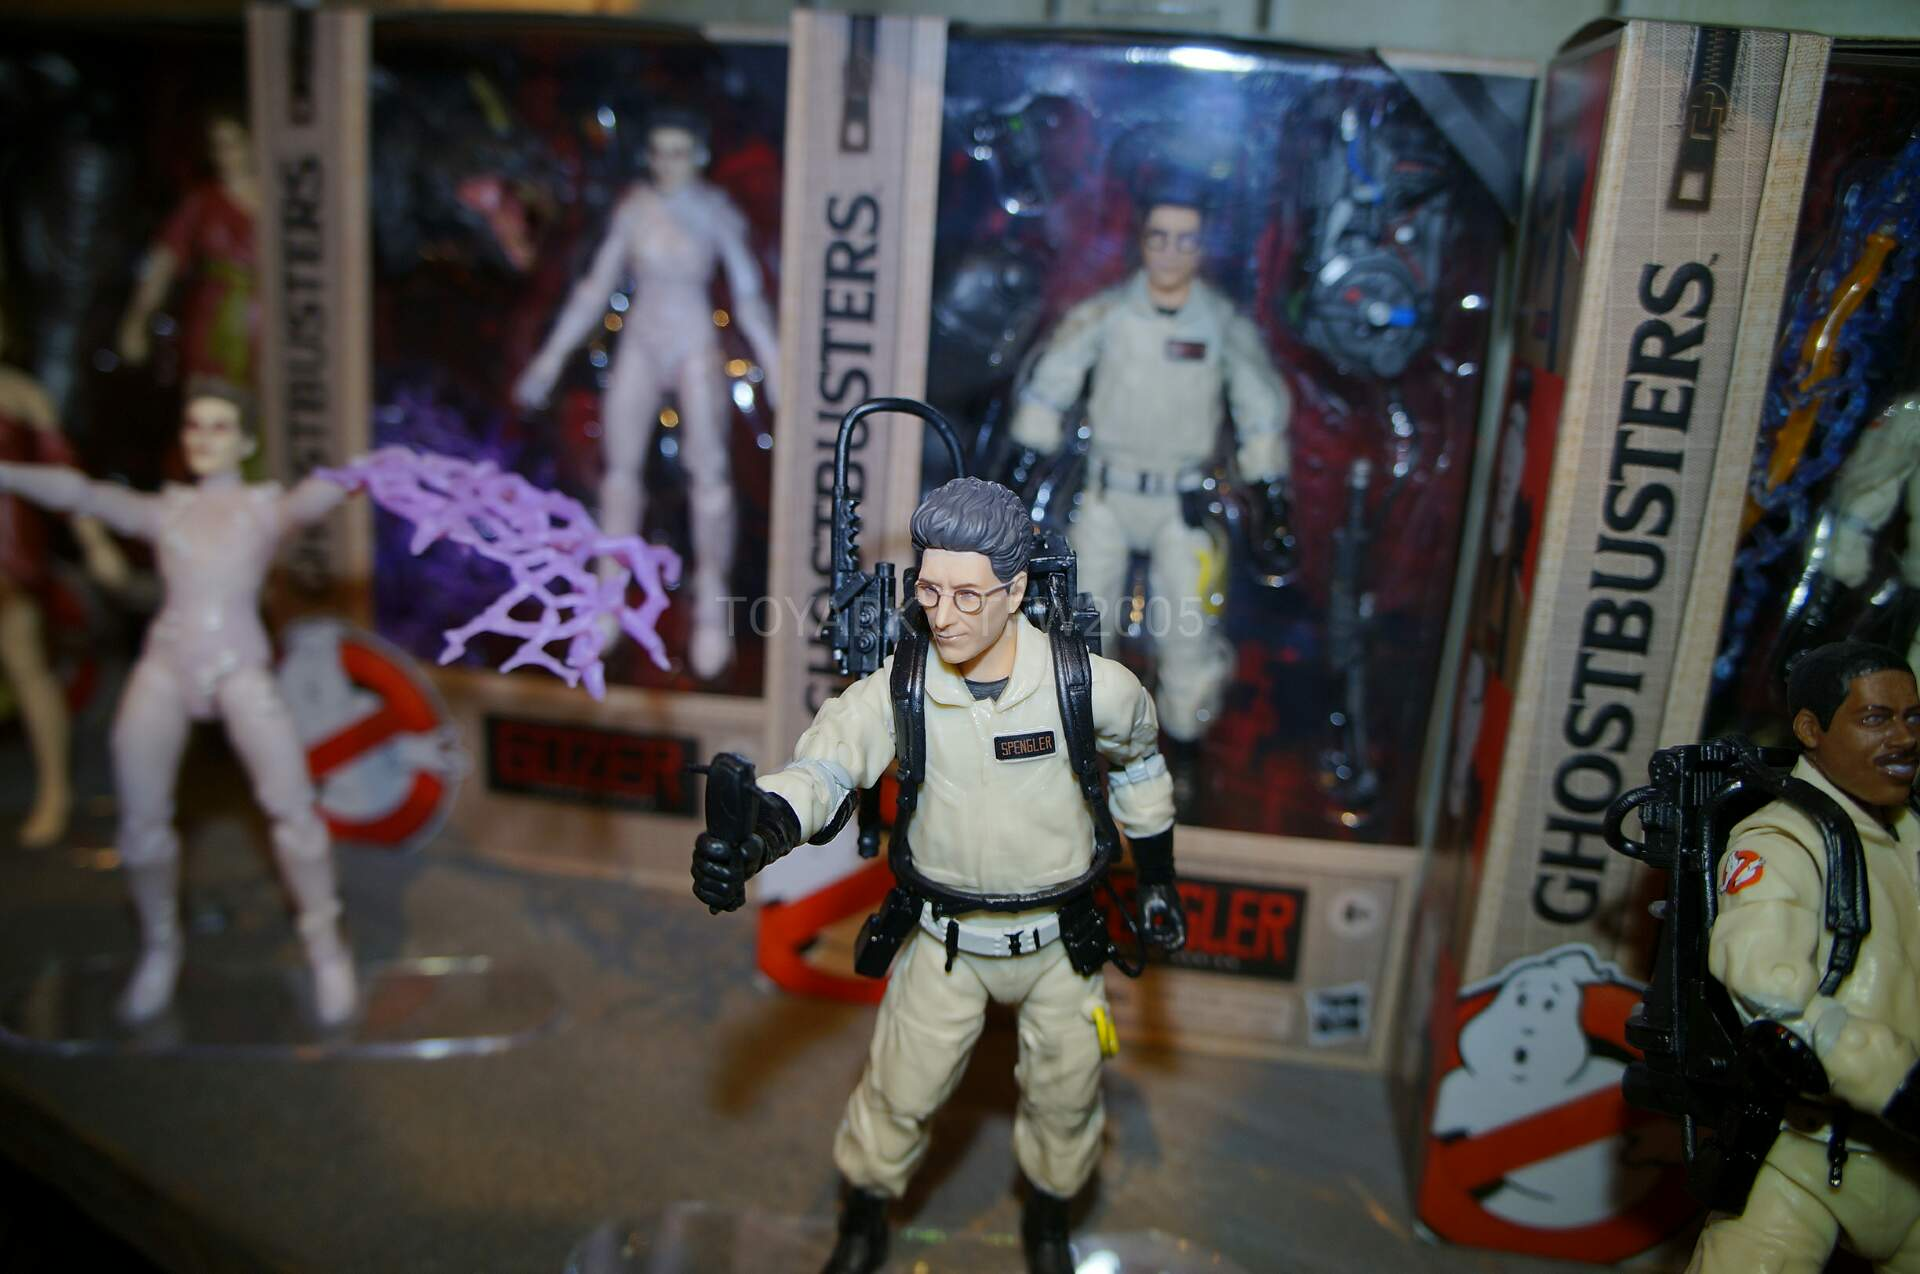 Toy-Fair-2020-Hasbro-Ghostbusters-037.jpg